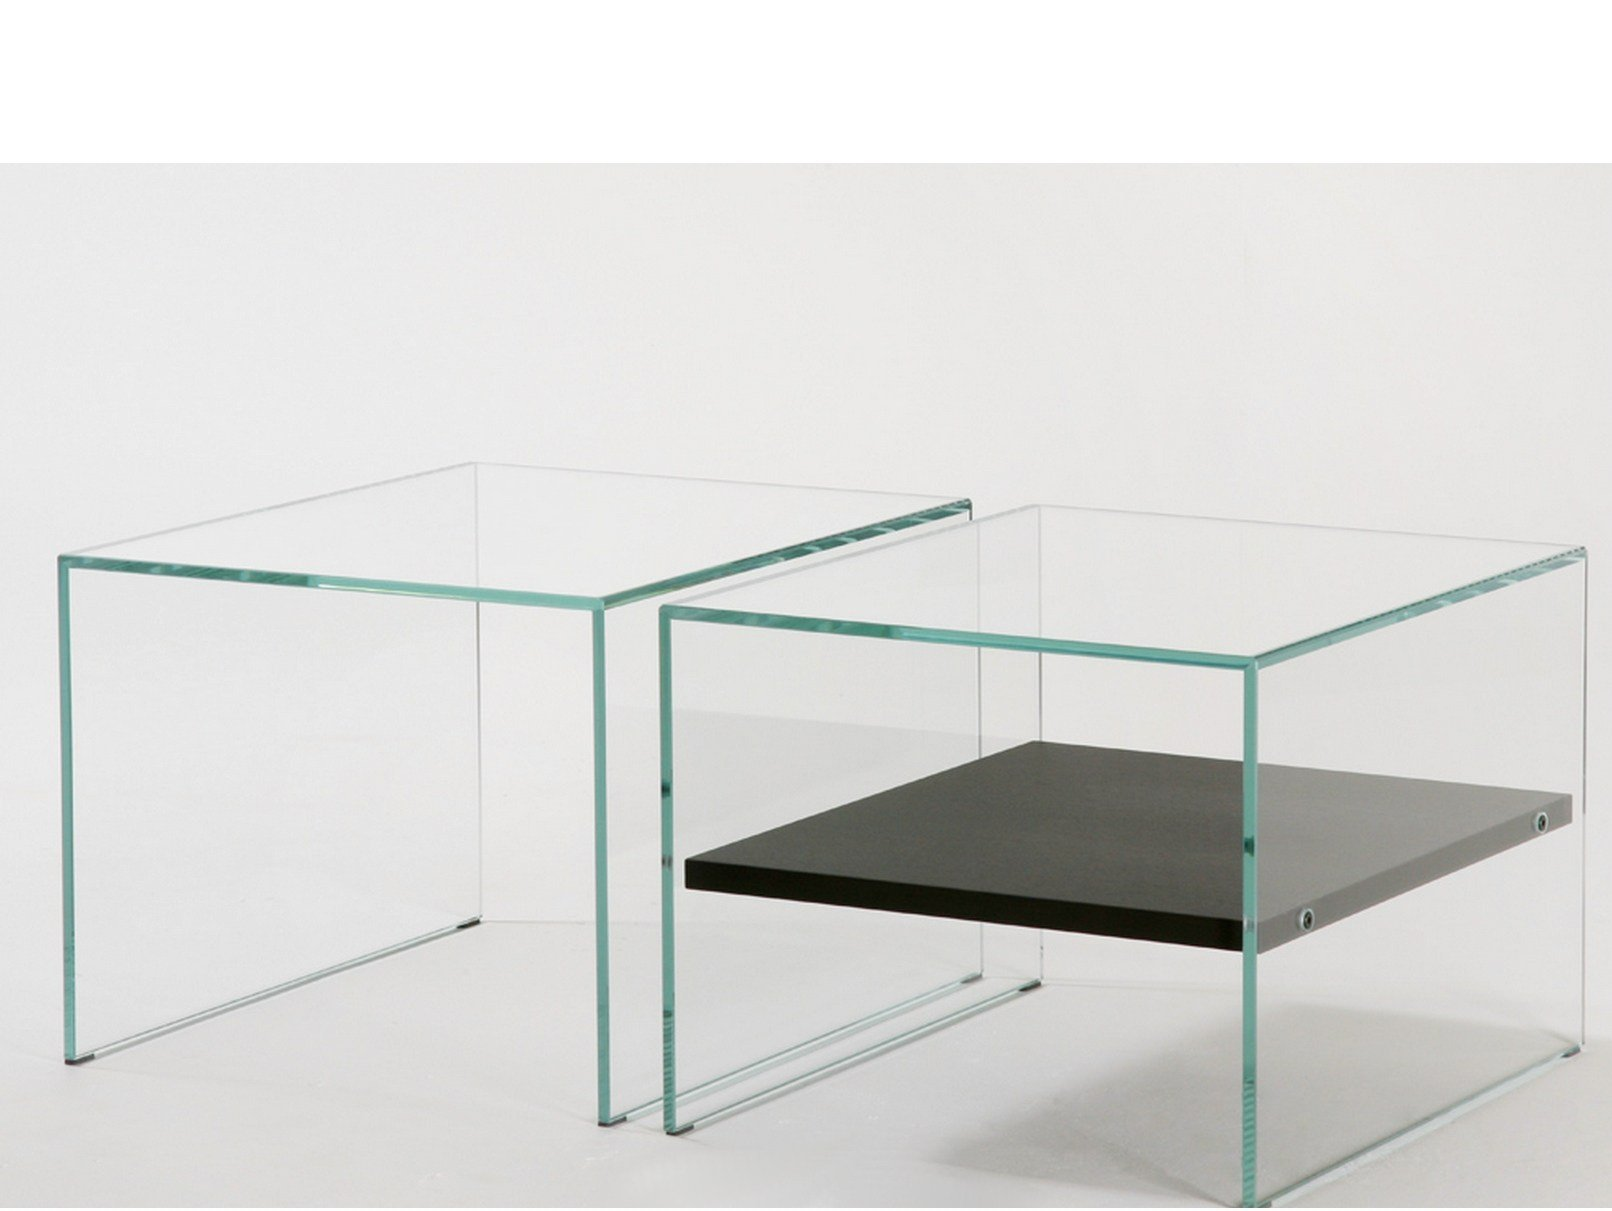 Table basse en verre tremp brothers zen 2 by adentro for Table basse en verre trempe